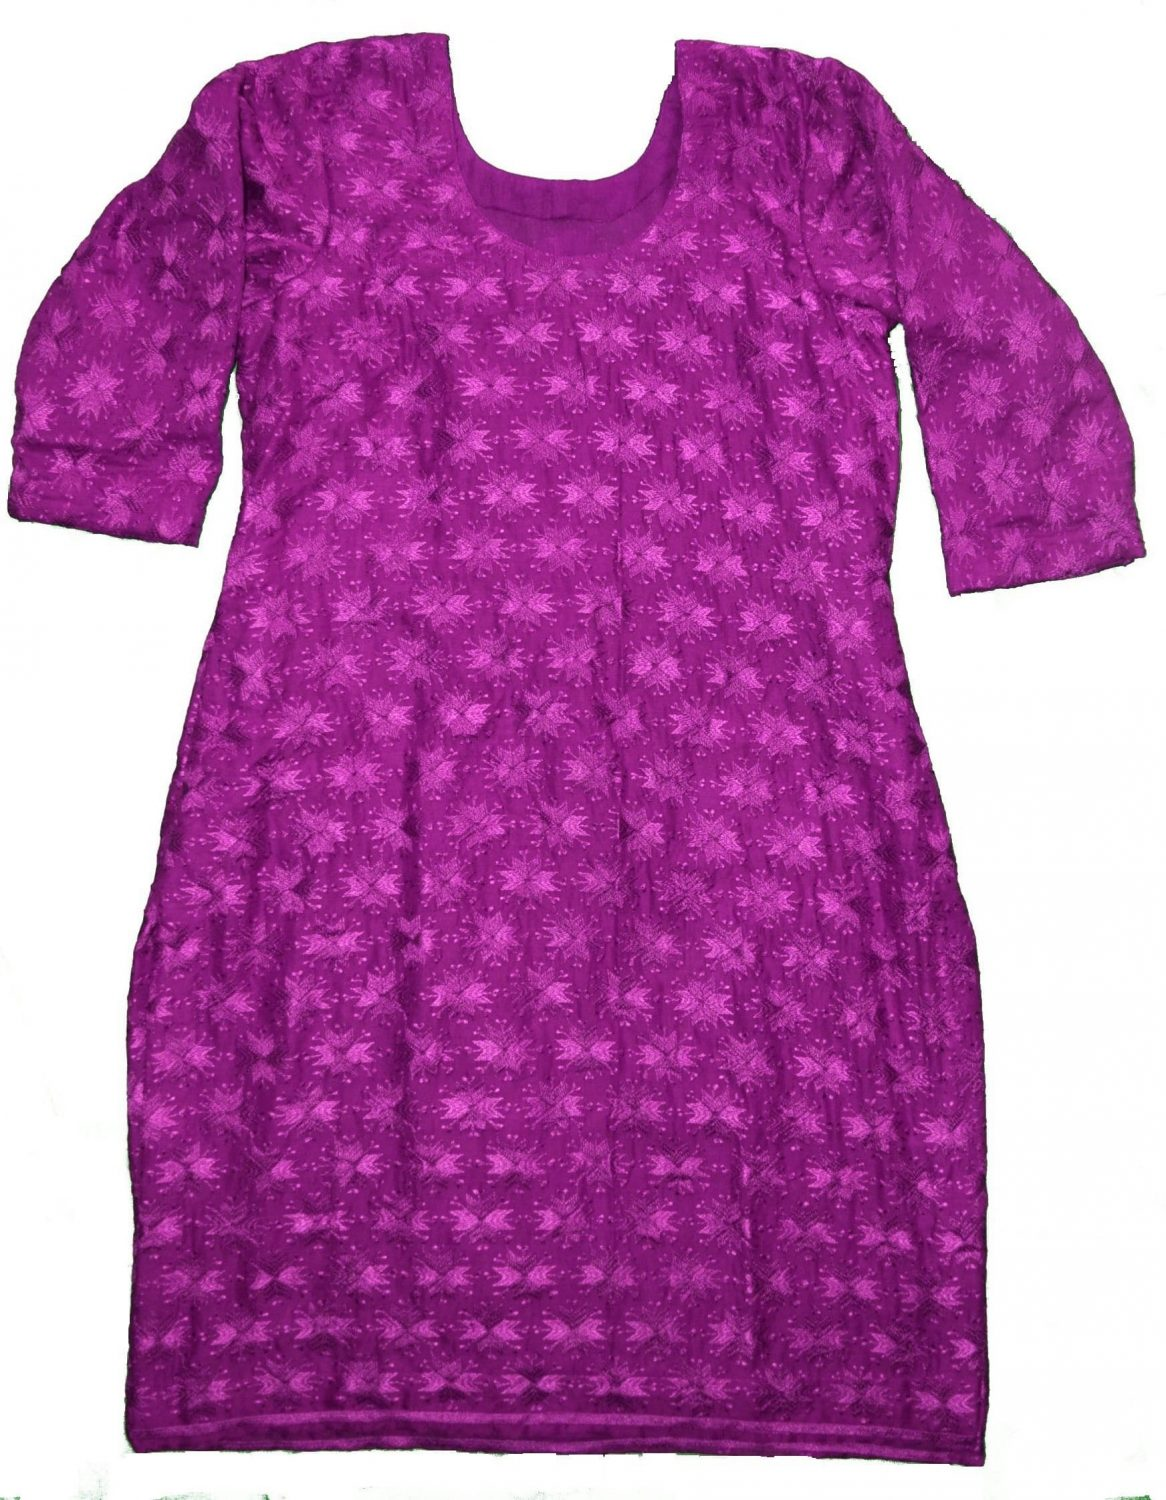 Self Embroidered Phulkari Kurti Custom Stitched - All Colours/Sizes Available 1